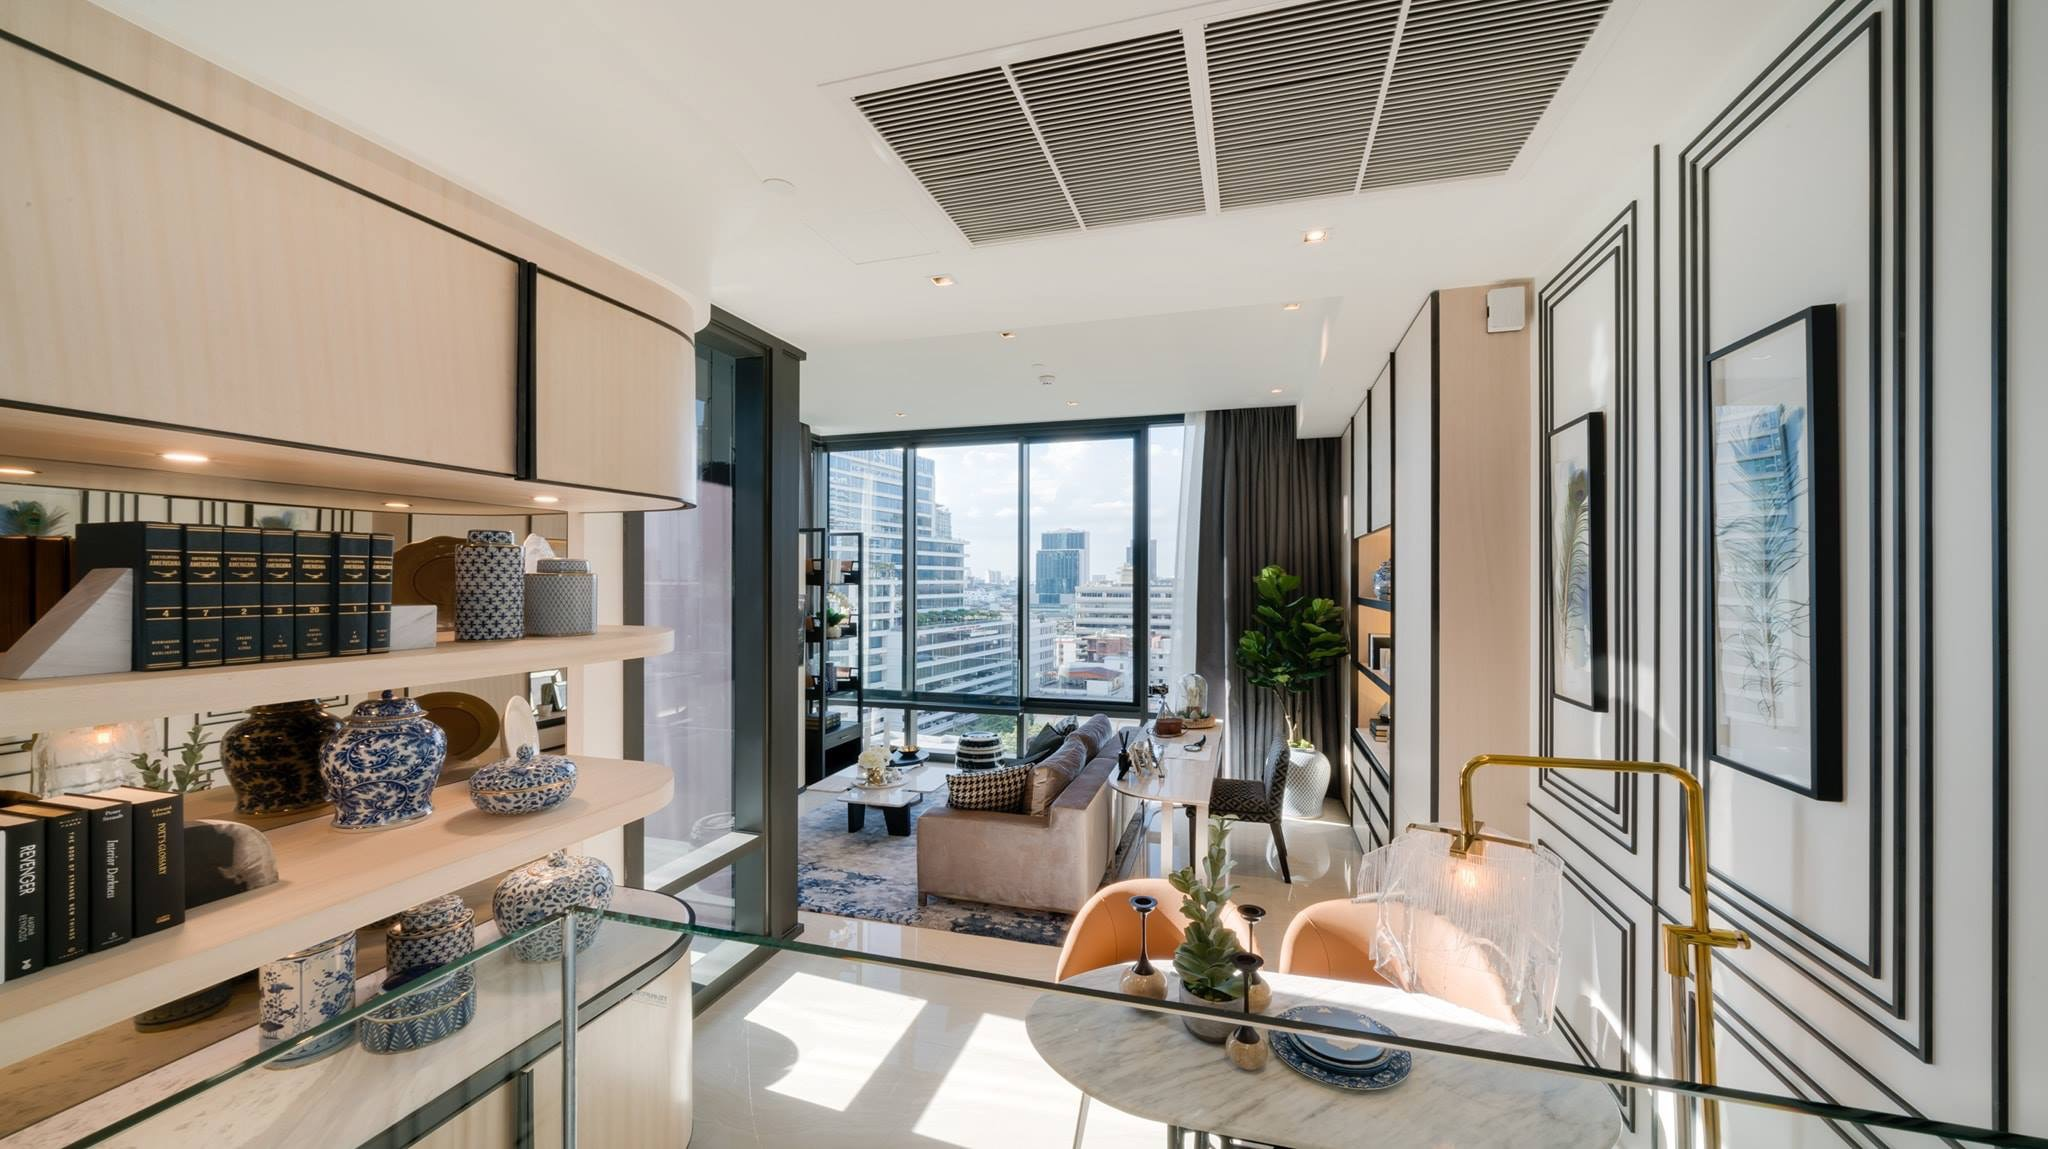 Sale DownCondoSilom, Saladaeng, Bangrak : Urgent sale, Justton Silom, only 14.9 million, 2 bedroom, 2 bathroom, high floor, STACK FL.